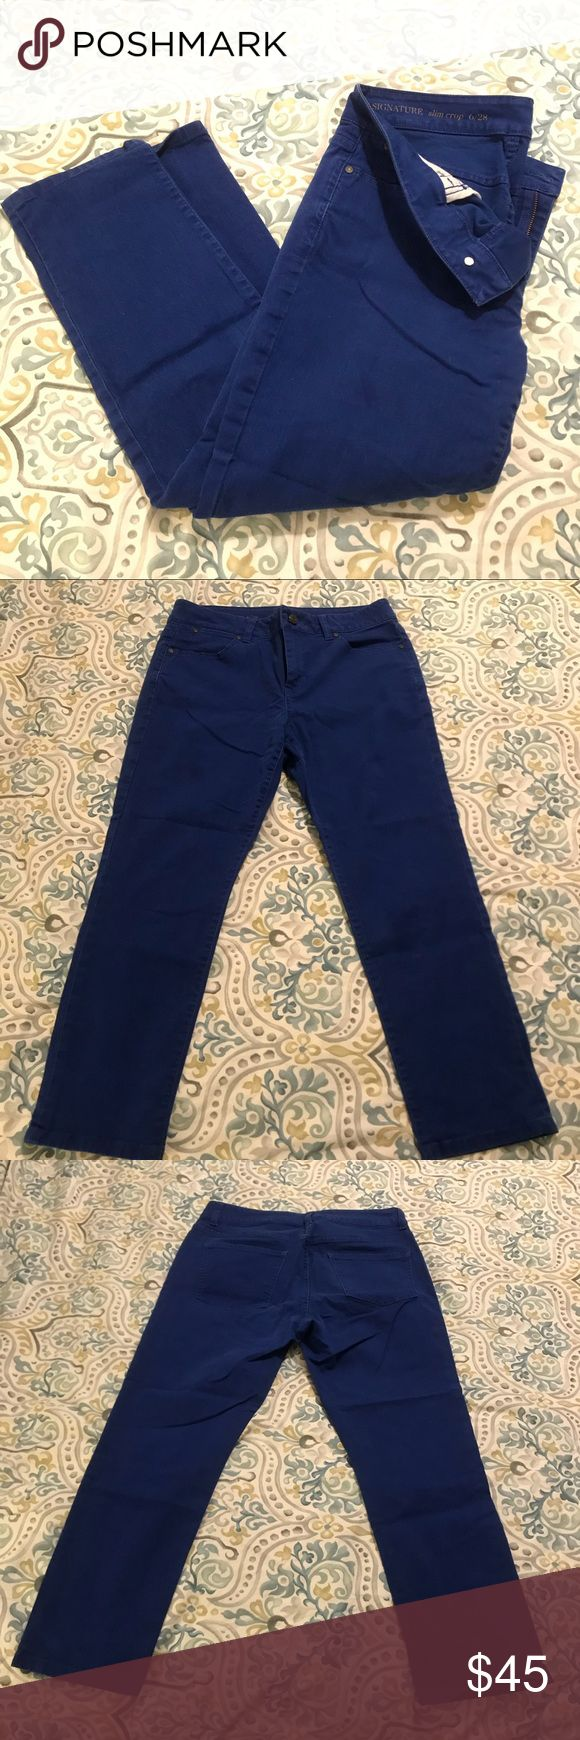 "Blue High Wasted Cropped Pants ""Signature Slim Crop"" high wasted pants from Talbots. Beautiful royal blue color. Like new condition, no flaws.  I wish these fit me, I would wear them every day! True wardrobe staple! 98% Cotton 2% elastane - structure with stretch!  Approximately 15"" across waist, 9"" rise, 24"" inseam, 6.5"" leg opening.   Please feel free to ask any questions and make any offers using the offer button! There are many similar sized items in my closet so bundle to save! Thank…"